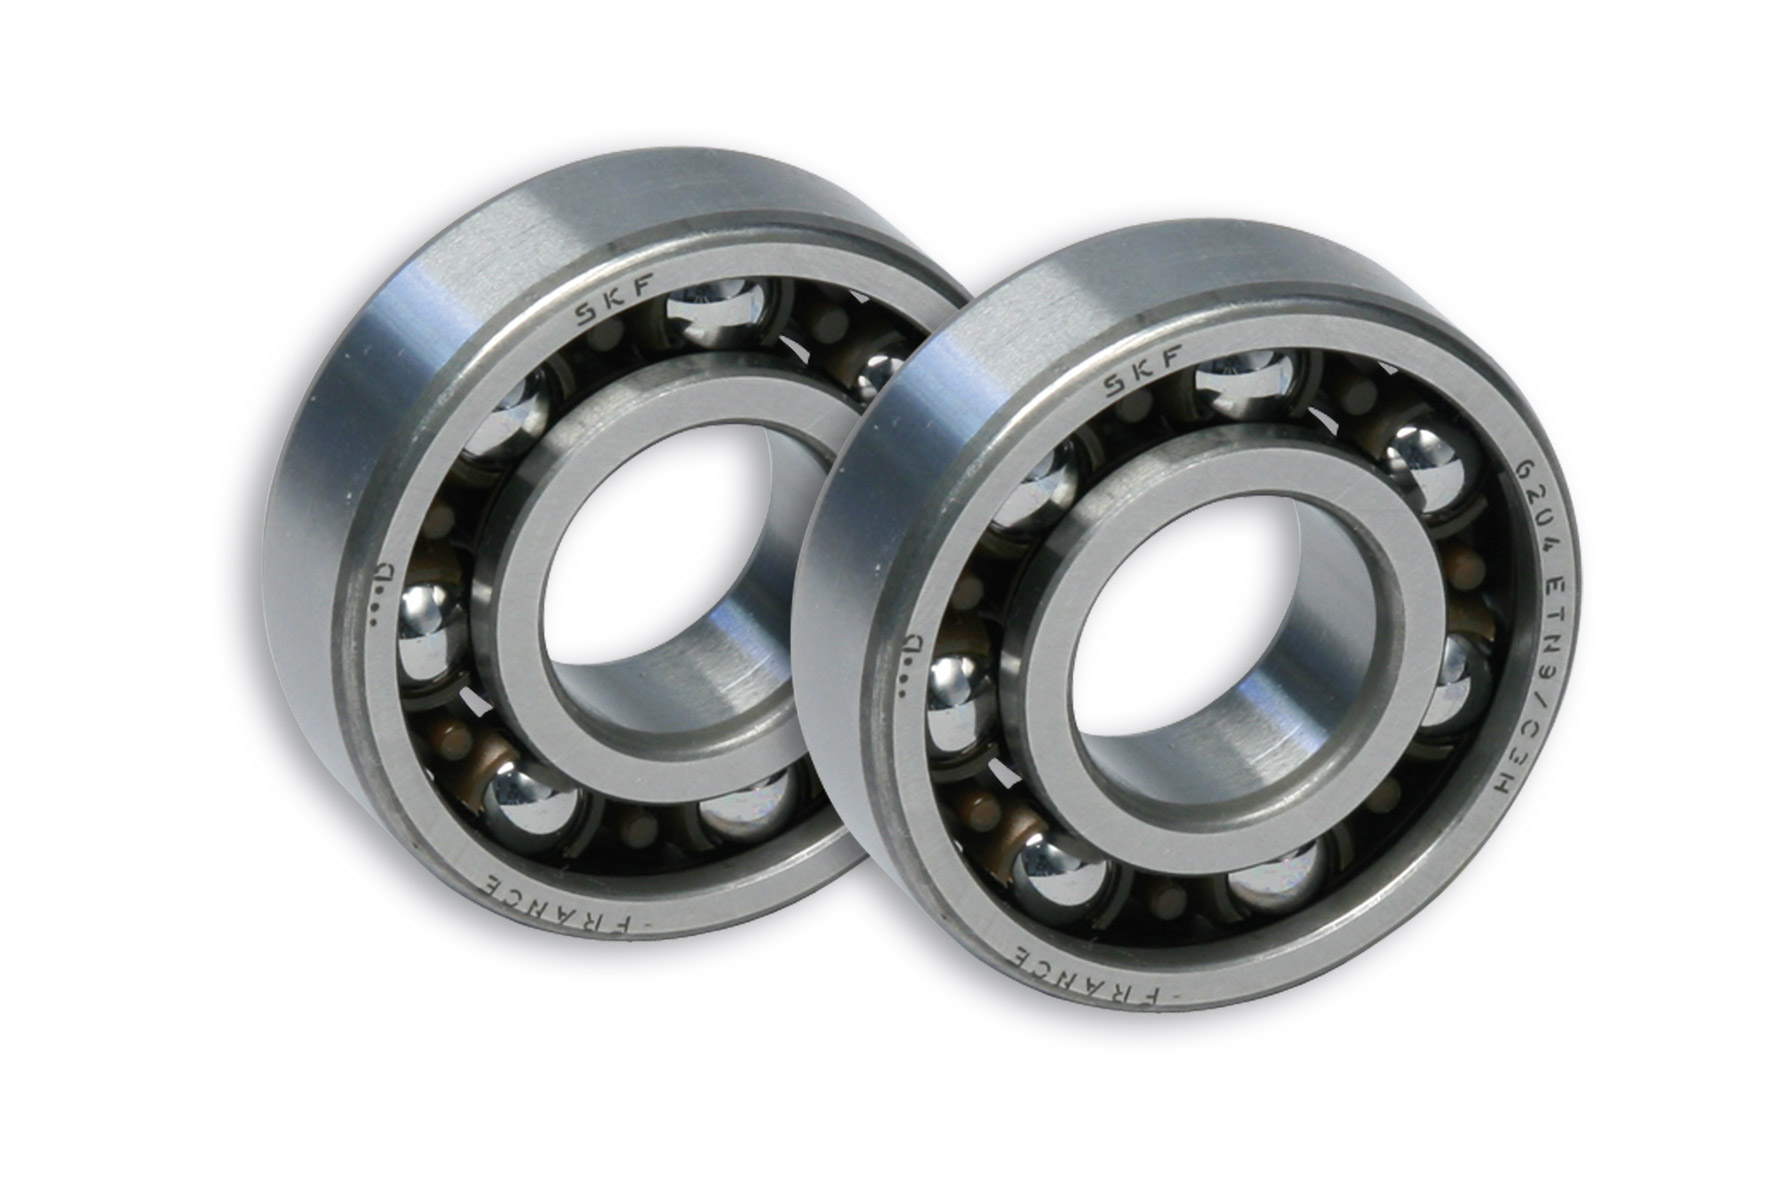 2 ROLLER BEARINGS with BALLS Ø 20x47x14 (C3H) for CRANKSH. moto DERBI-scooter MIN./YAM.50